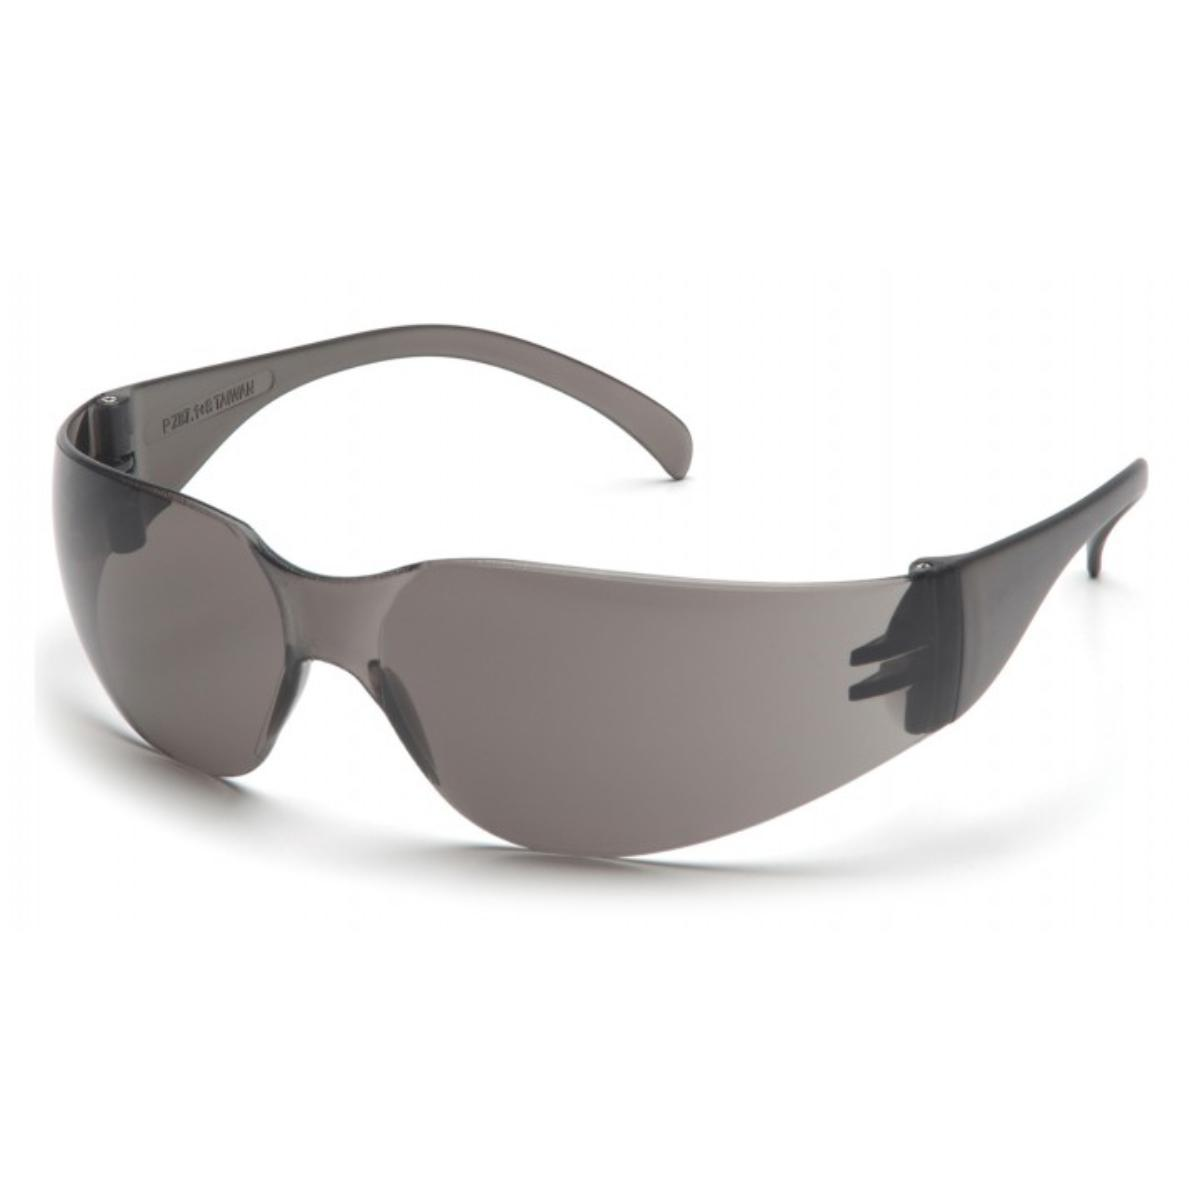 Gray Frame/Gray-Hardcoated Lens